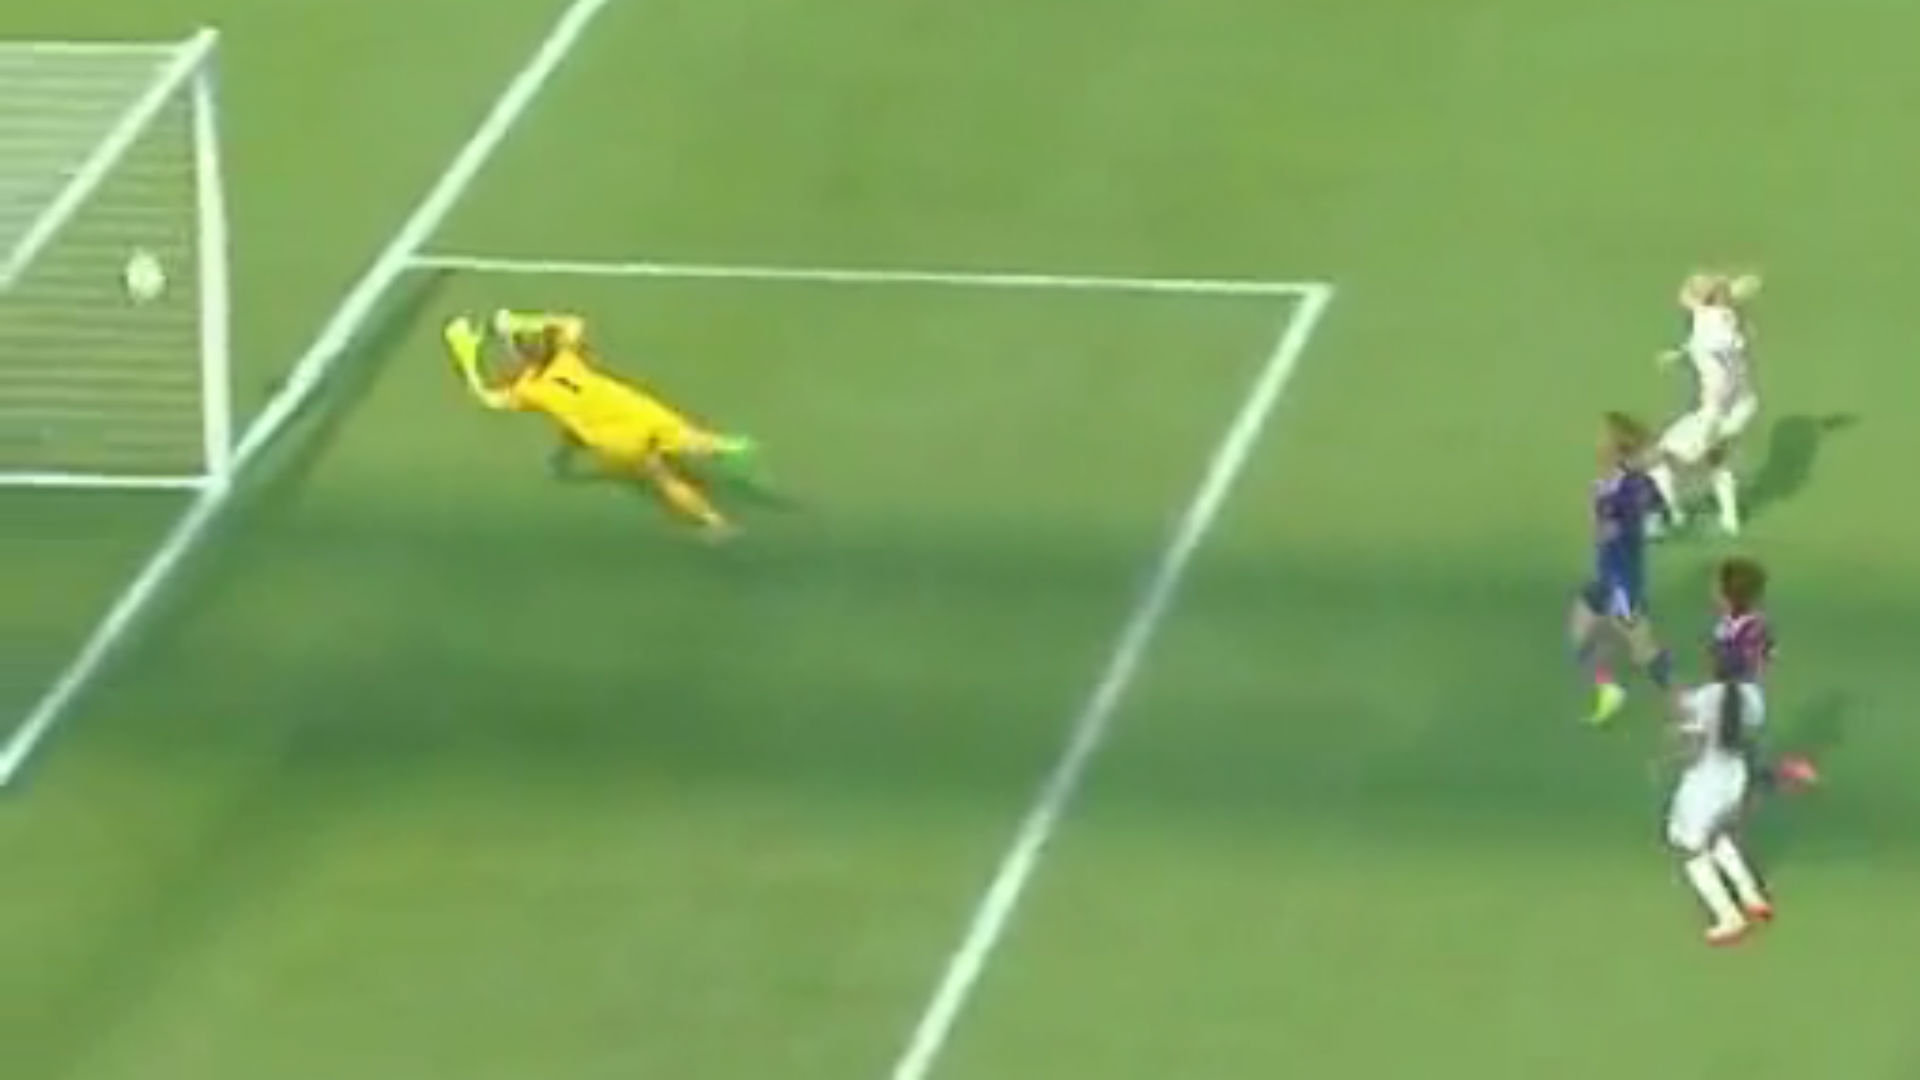 England loses on heartbreaking own goal with seconds left in the match